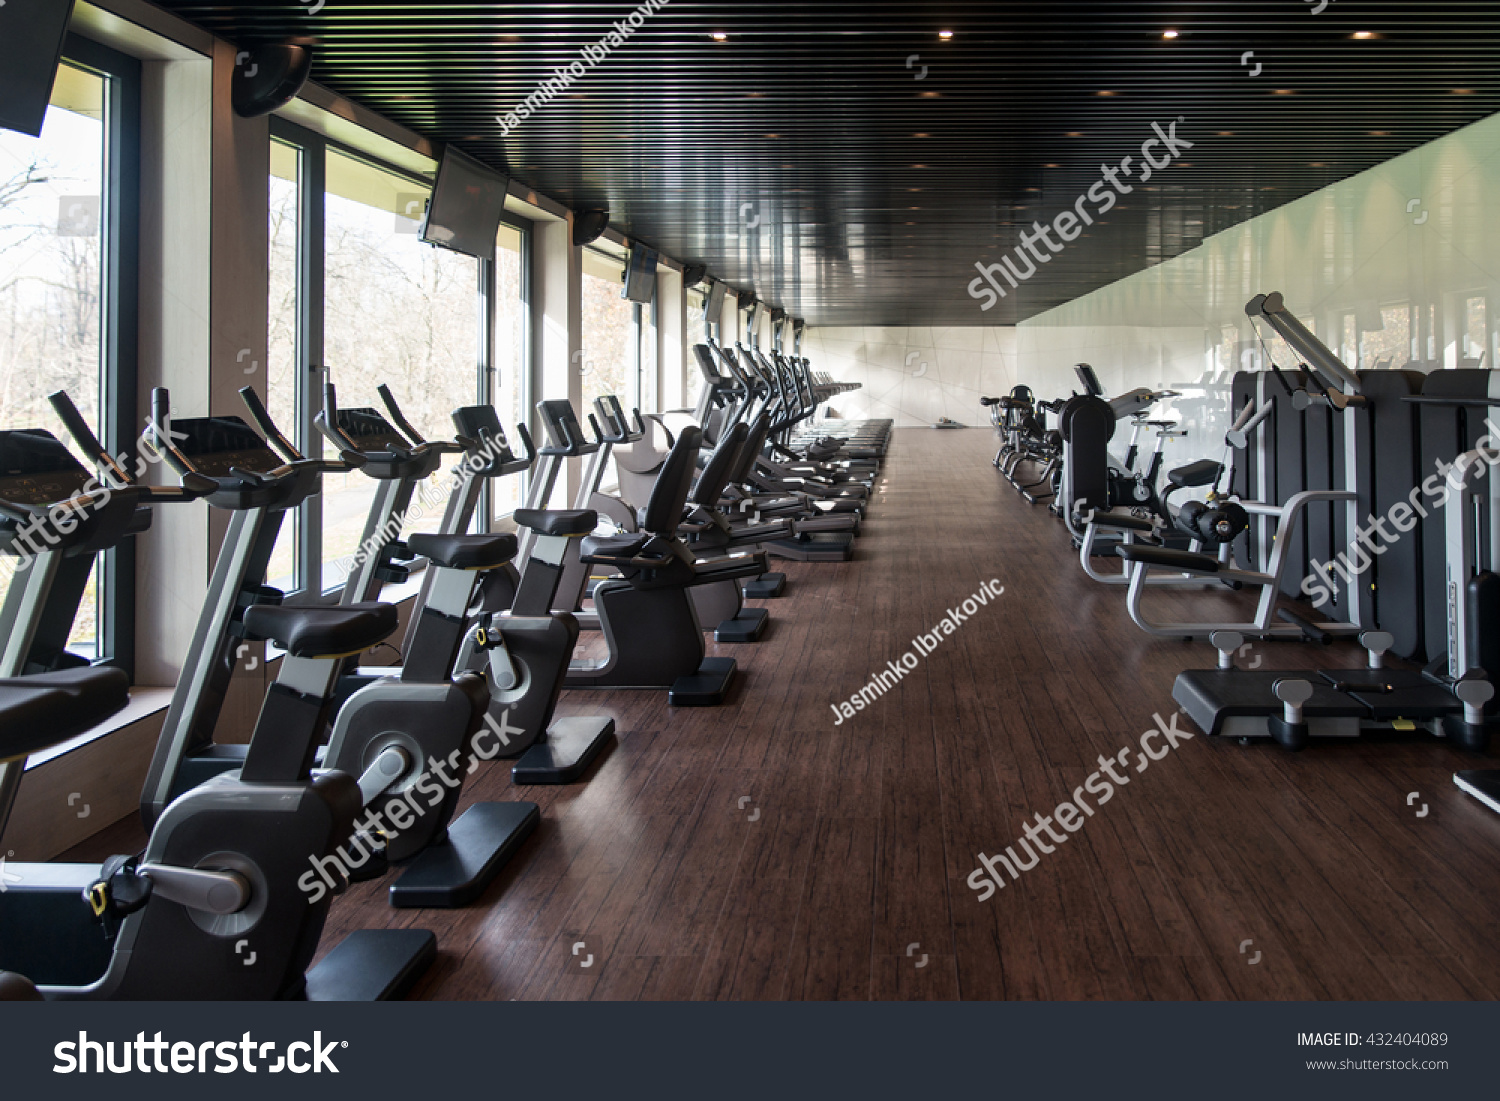 Equipment machines modern gym room fitness stock photo